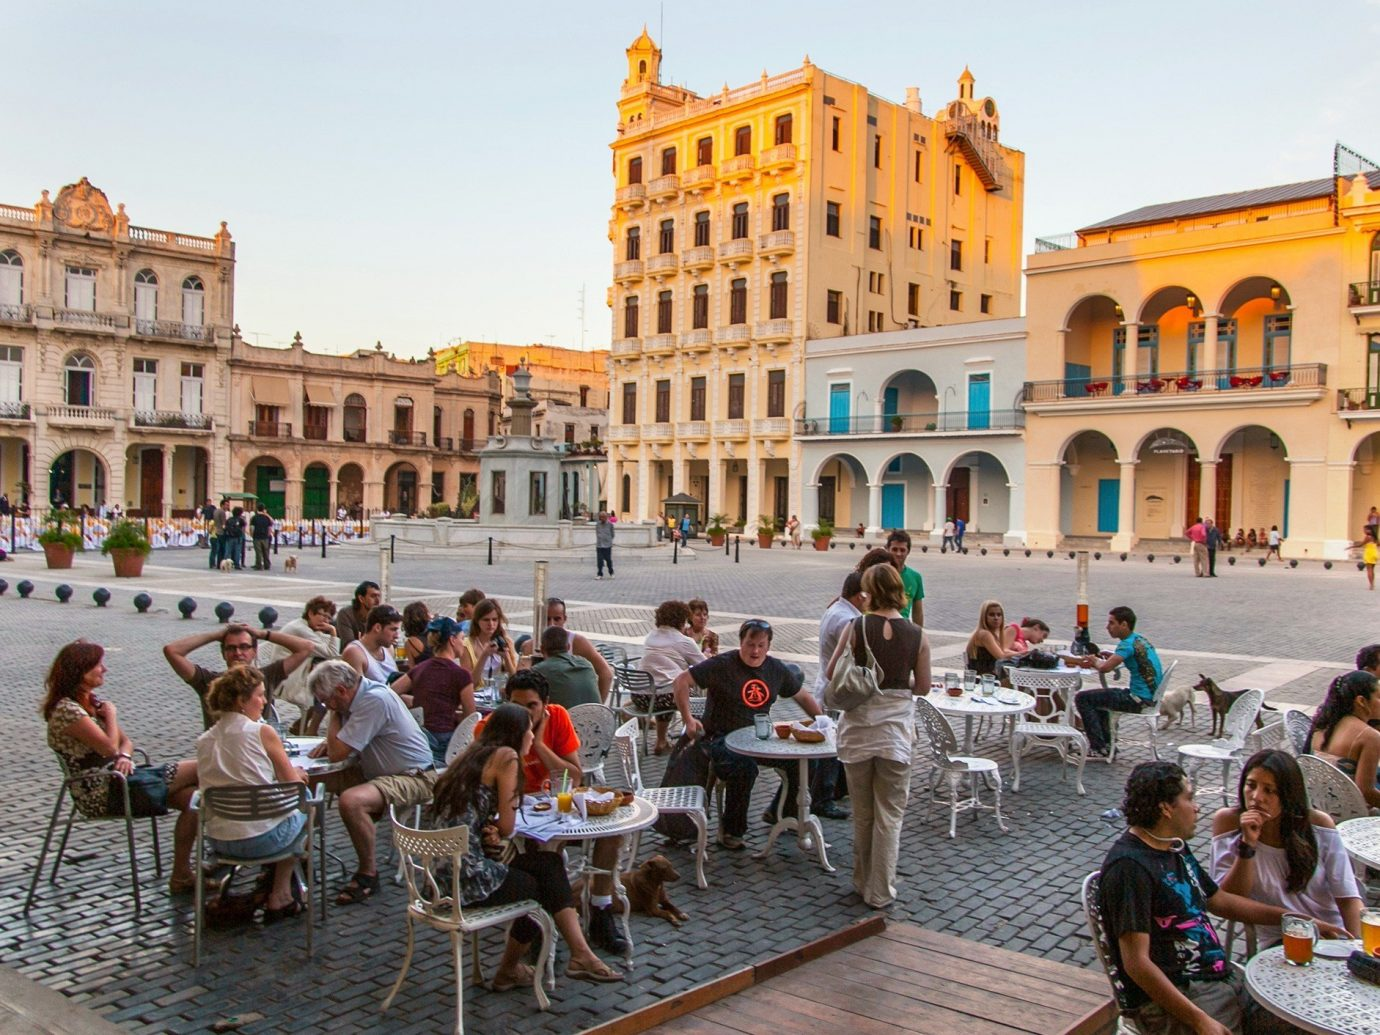 Jetsetter Guides building outdoor sky person plaza Town group landmark people tourism palace town square human settlement vacation ancient rome ancient history tours travel crowd